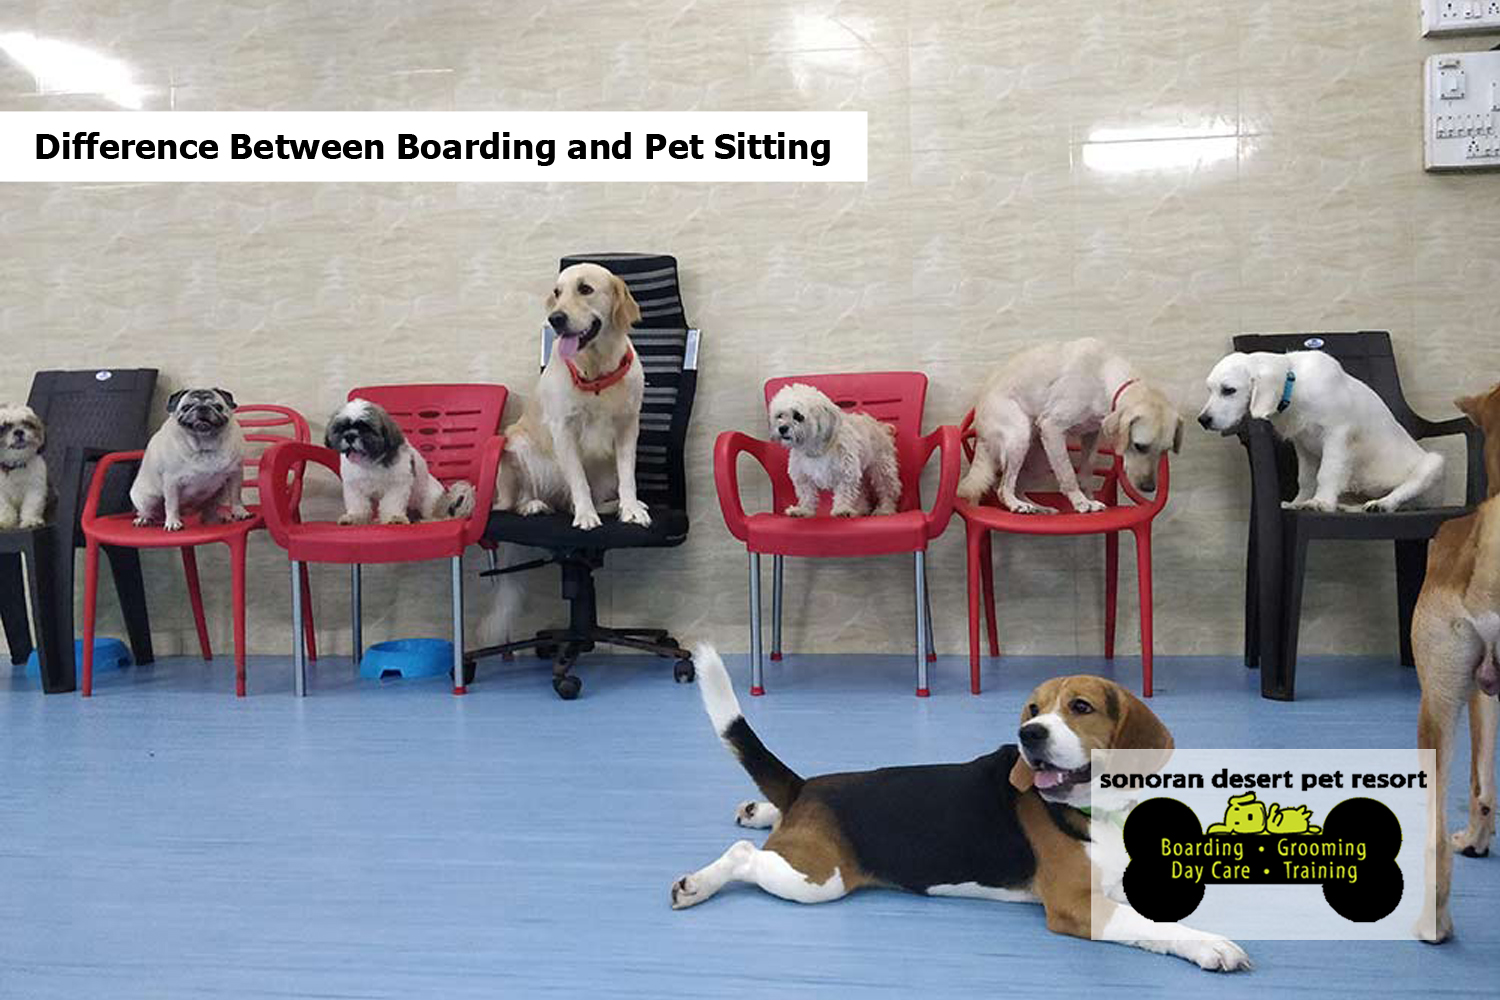 Difference Between Boarding and Pet Sitting